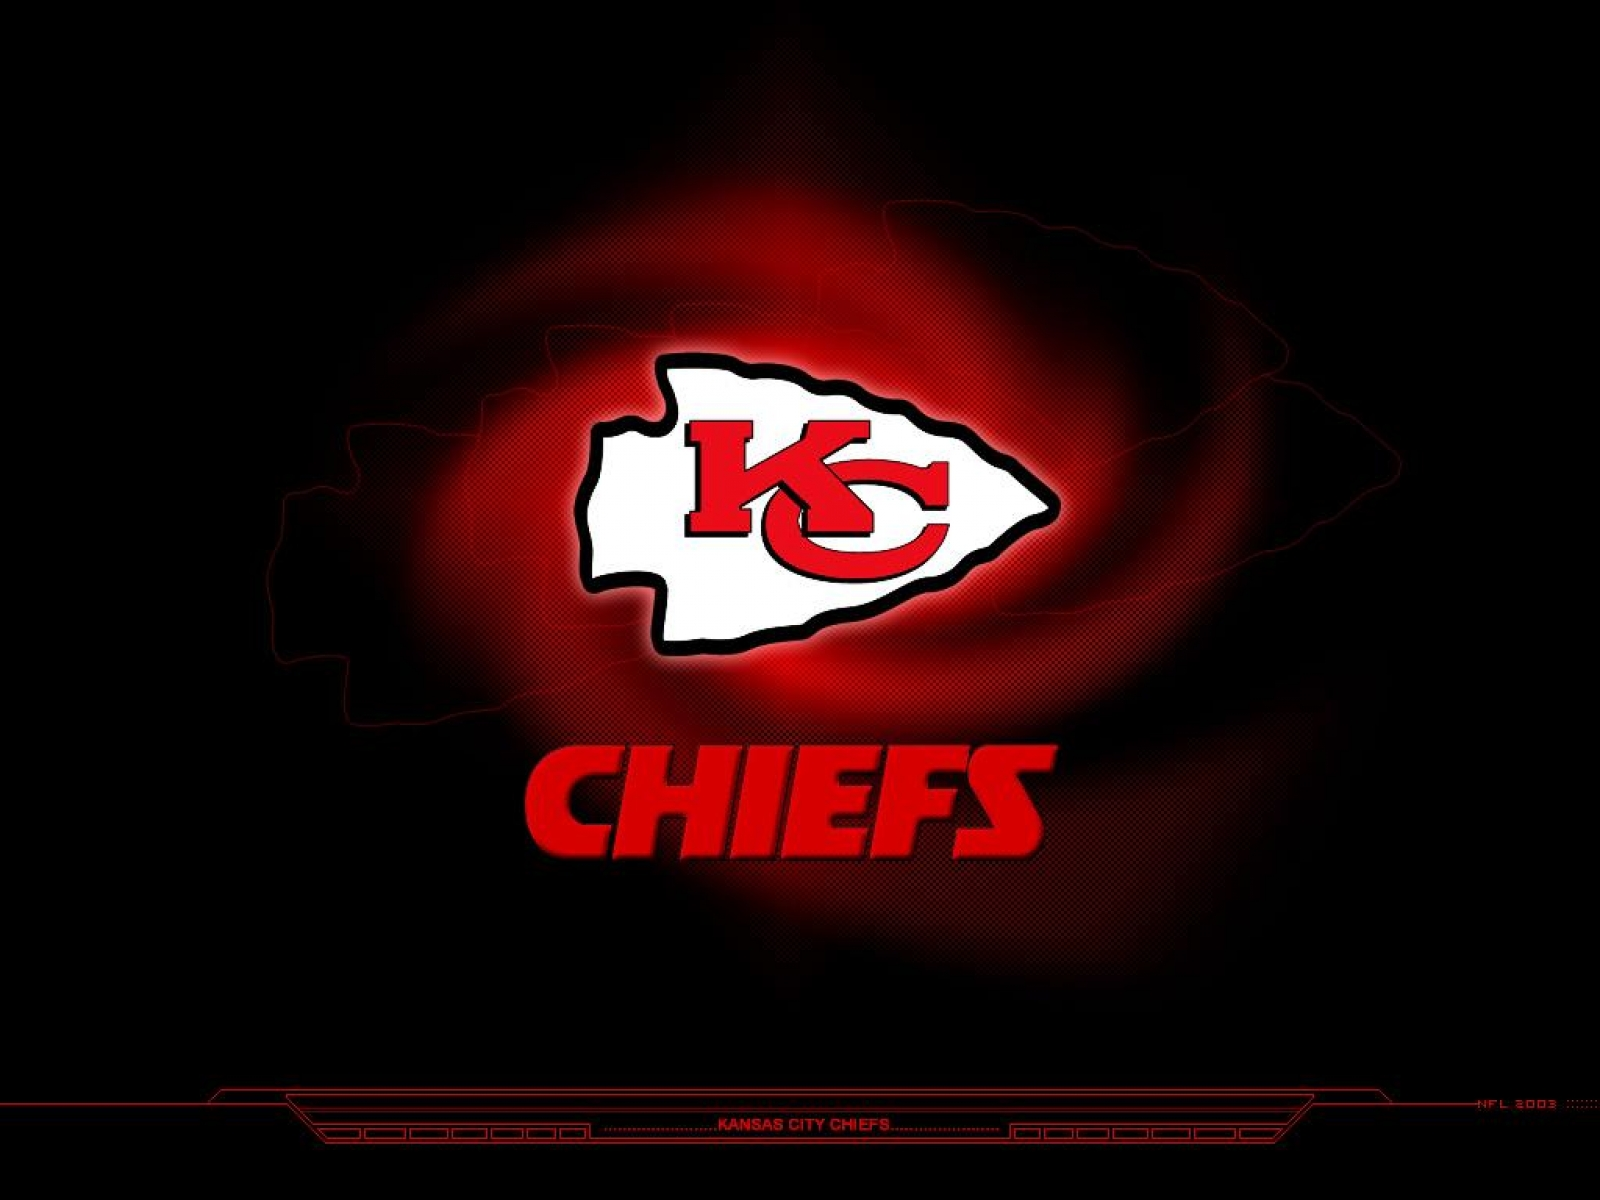 Kansas City Chiefs Football Pictures City Chiefs Nfl Football